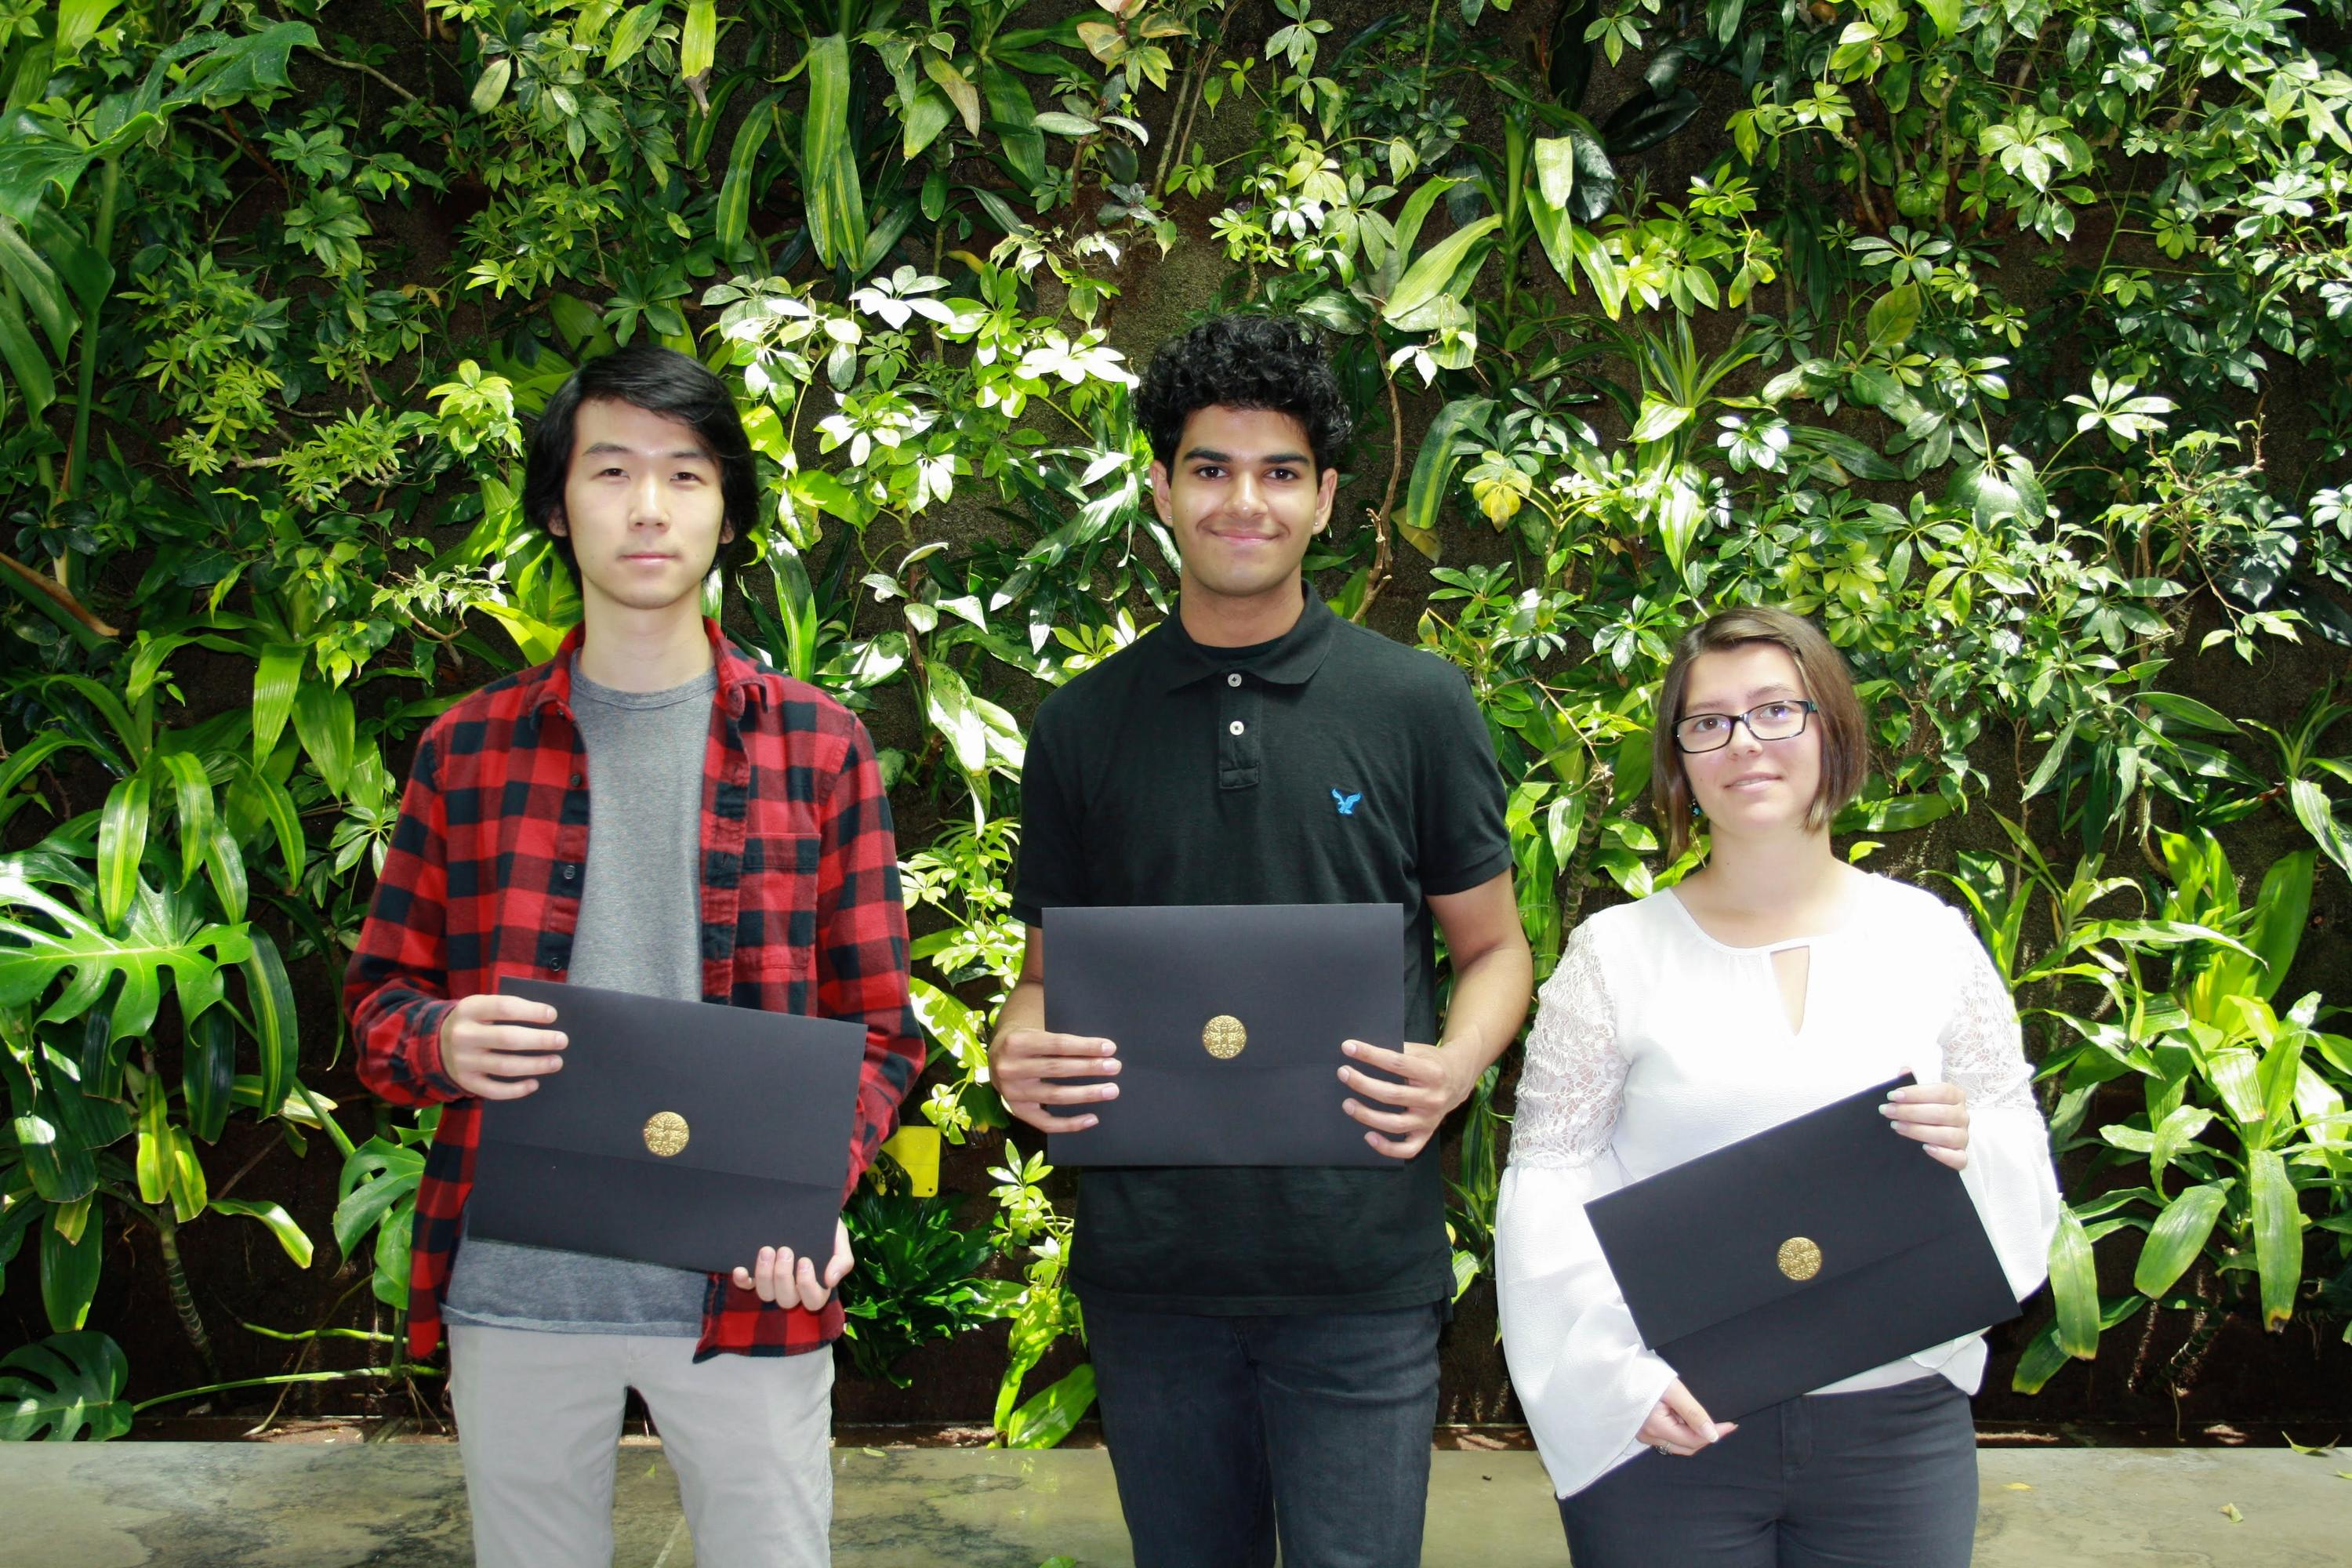 Anton Yu, Nikhail Dawan, and Jennifer Fliesser holding their certificates